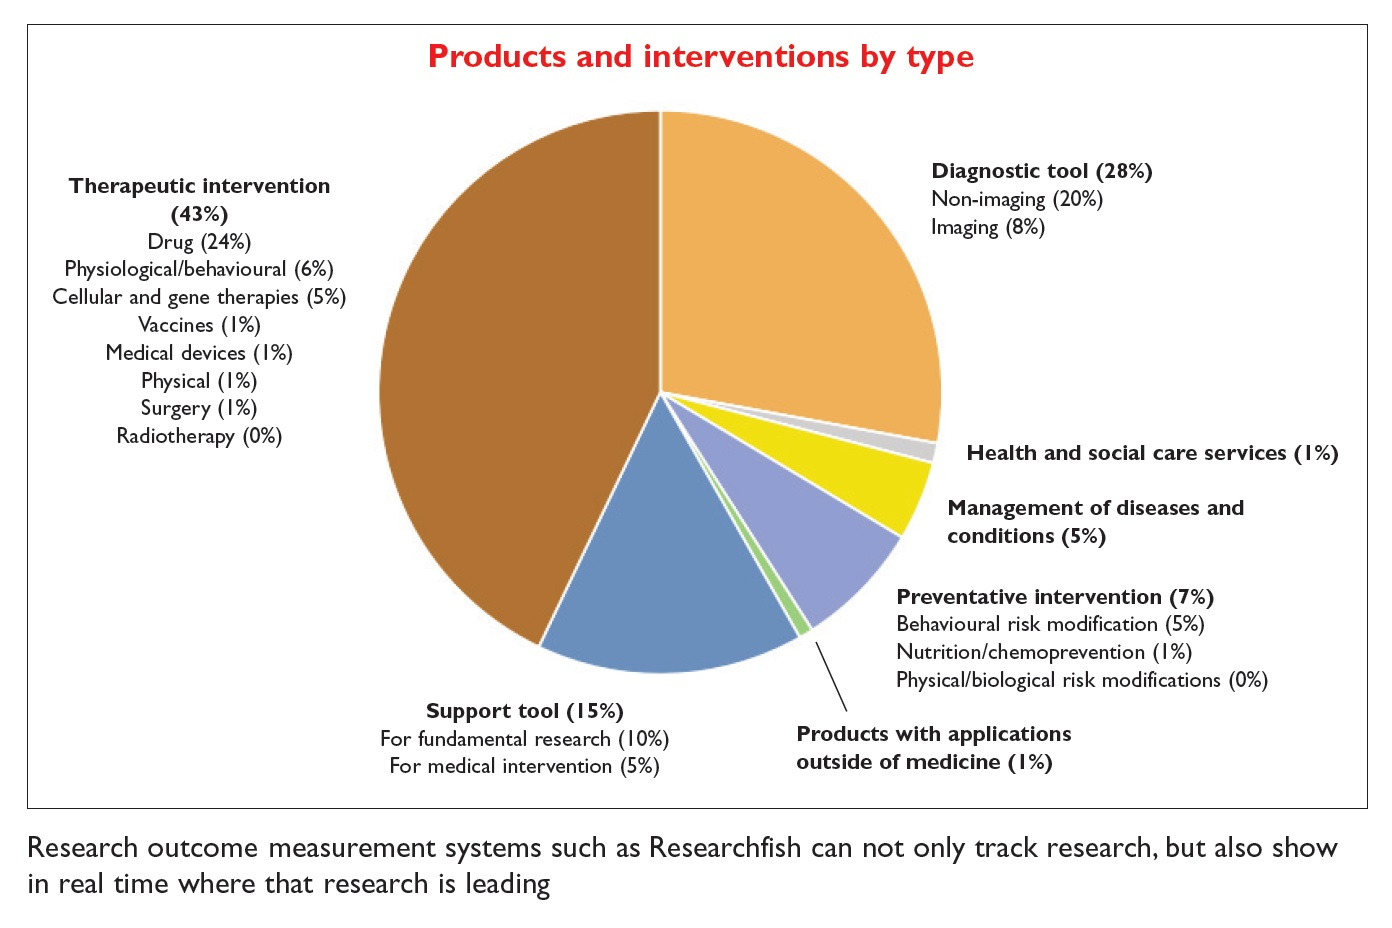 Figure 1 Products and interventions by type, Researchfish pie chart